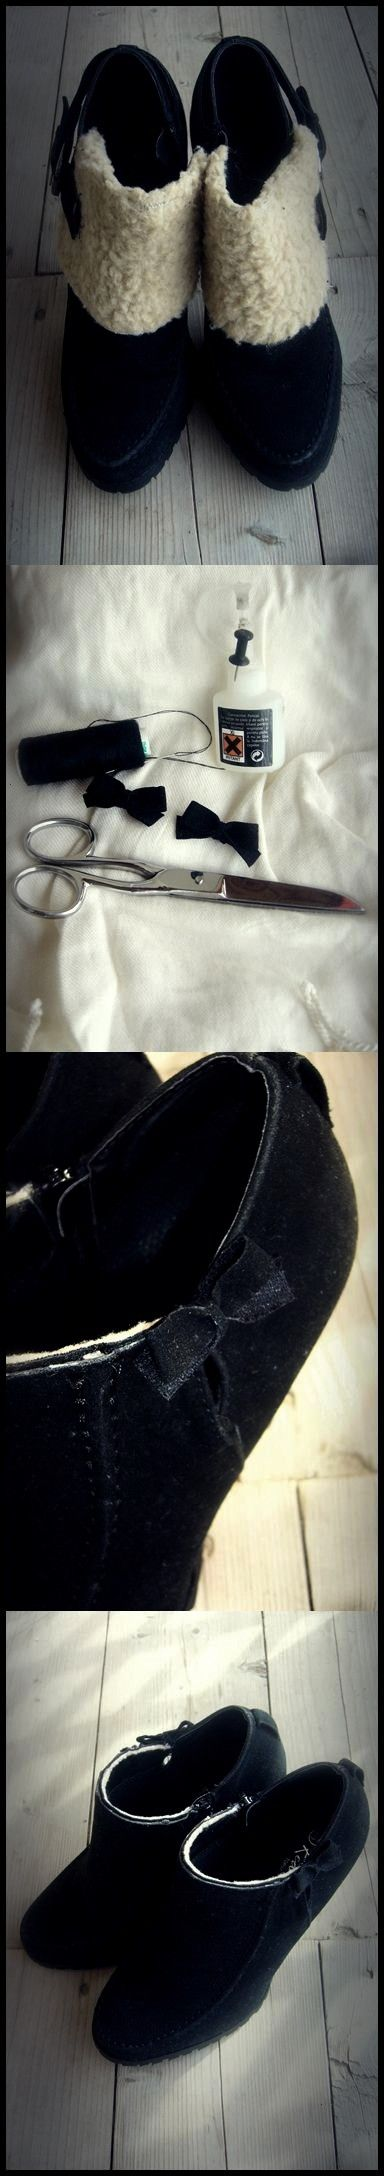 shoes using needle and thread scissors needleRefashion shoes using needle and thread scissors needle Crafty Stuff Baby Knits and Photo Props DIY For Newborn Photographers...